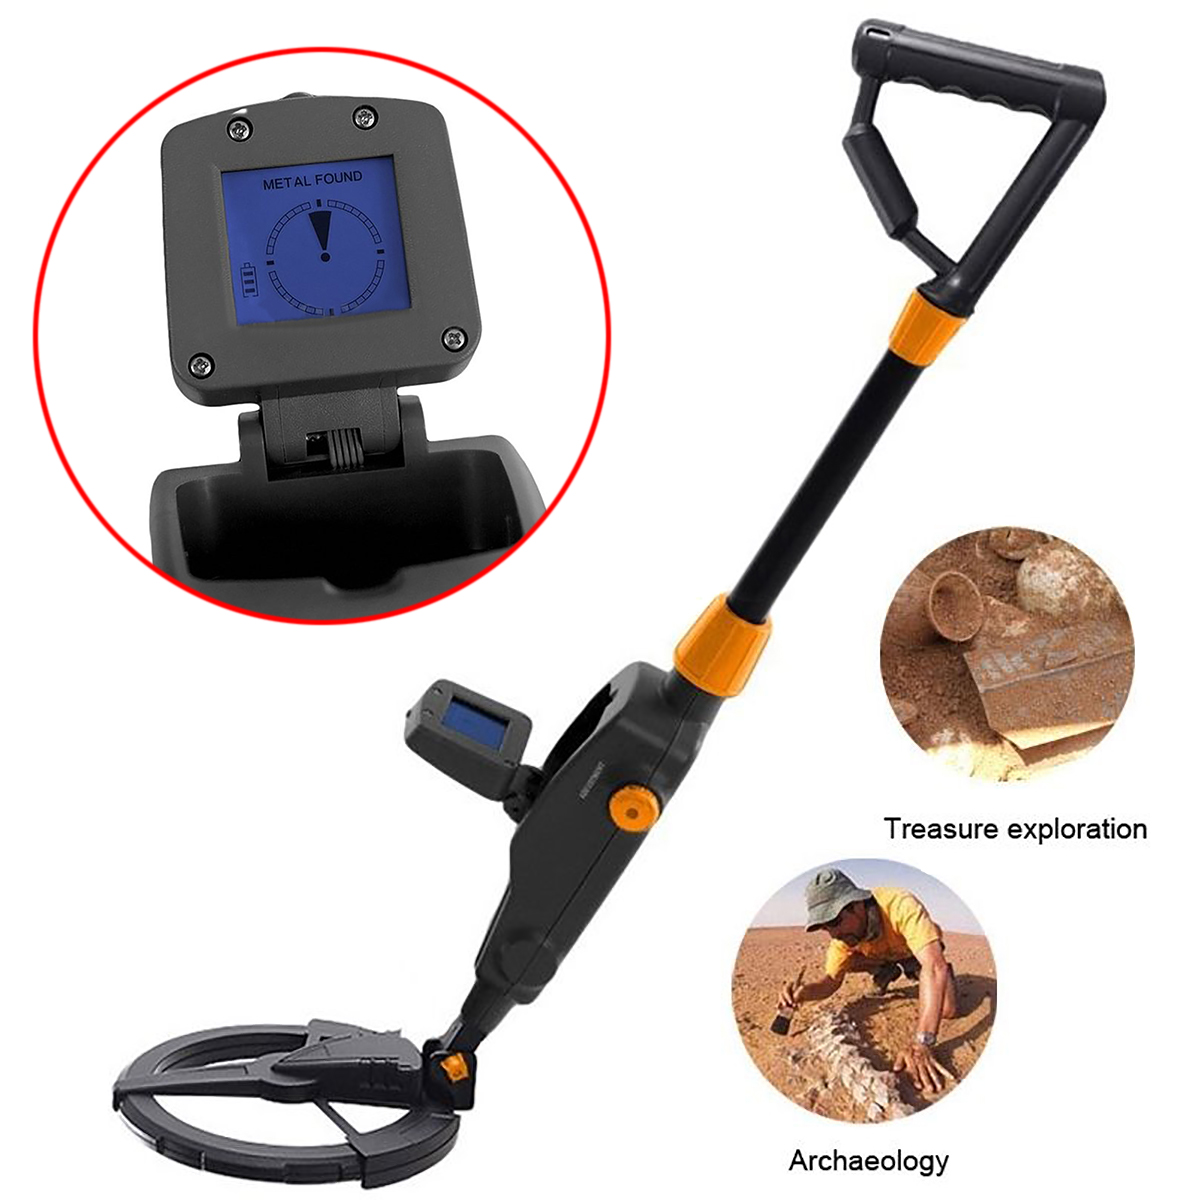 MD-1008A LCD Metal Detector Beach Search Machine Underground Gold Digger Mayitr Industrial Metal Detectors for Metal Detection